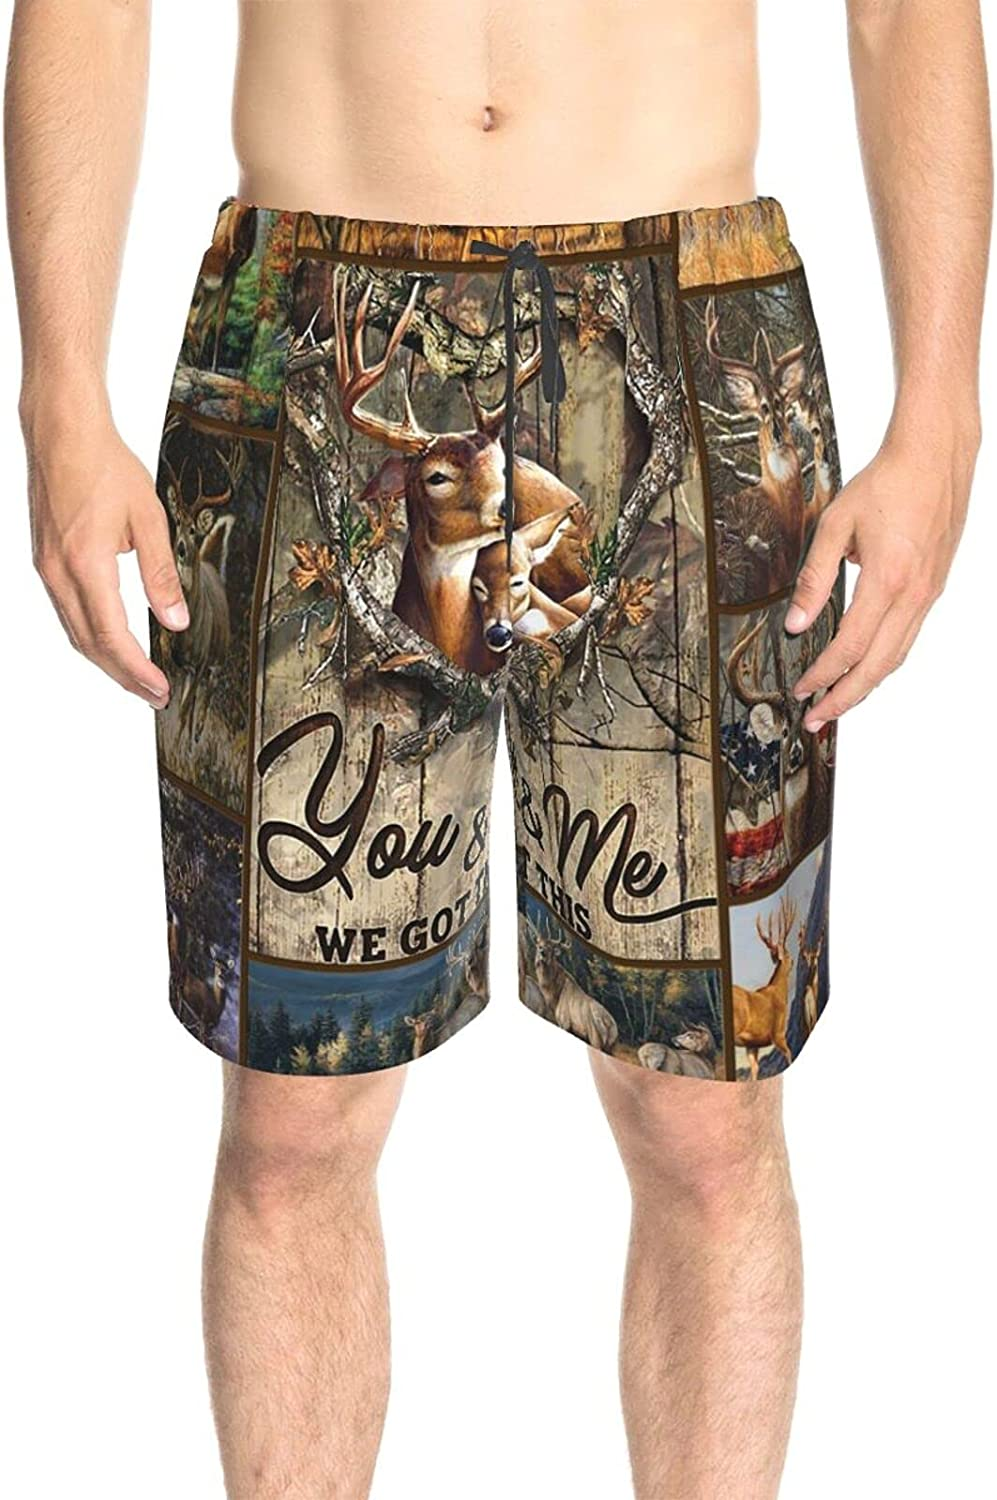 JINJUELS Mens Swim Trunks Hunting Deer We Got This Bathing Suit Boardshorts Quick Dry Cool Swimming Trunks with Pockets